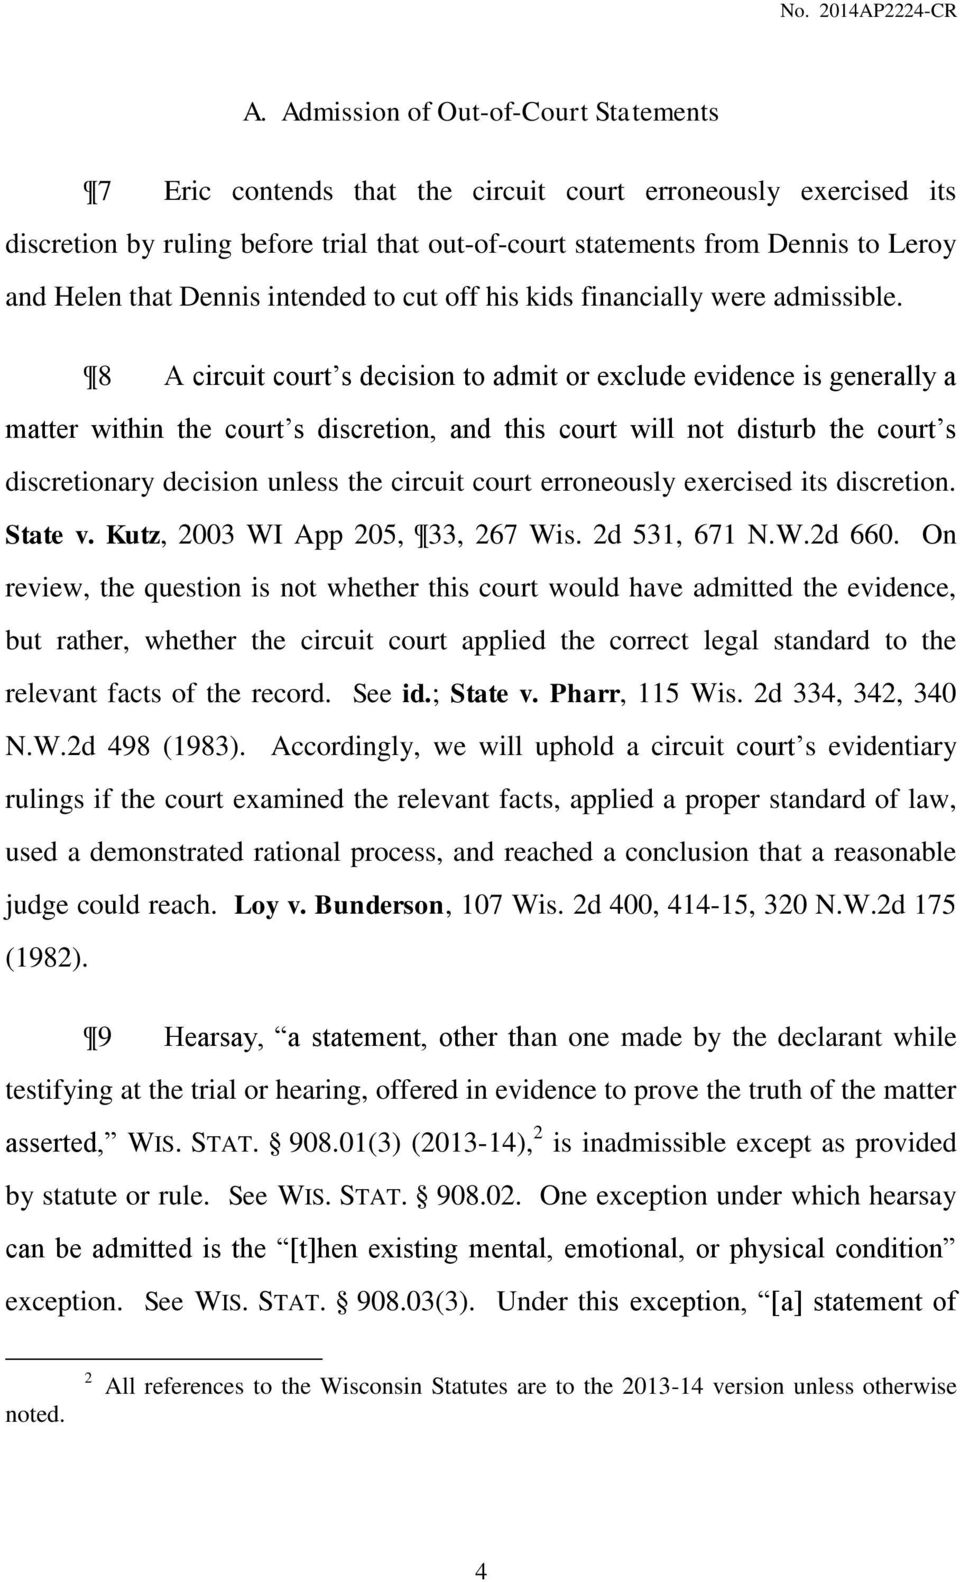 8 A circuit court s decision to admit or exclude evidence is generally a matter within the court s discretion, and this court will not disturb the court s discretionary decision unless the circuit